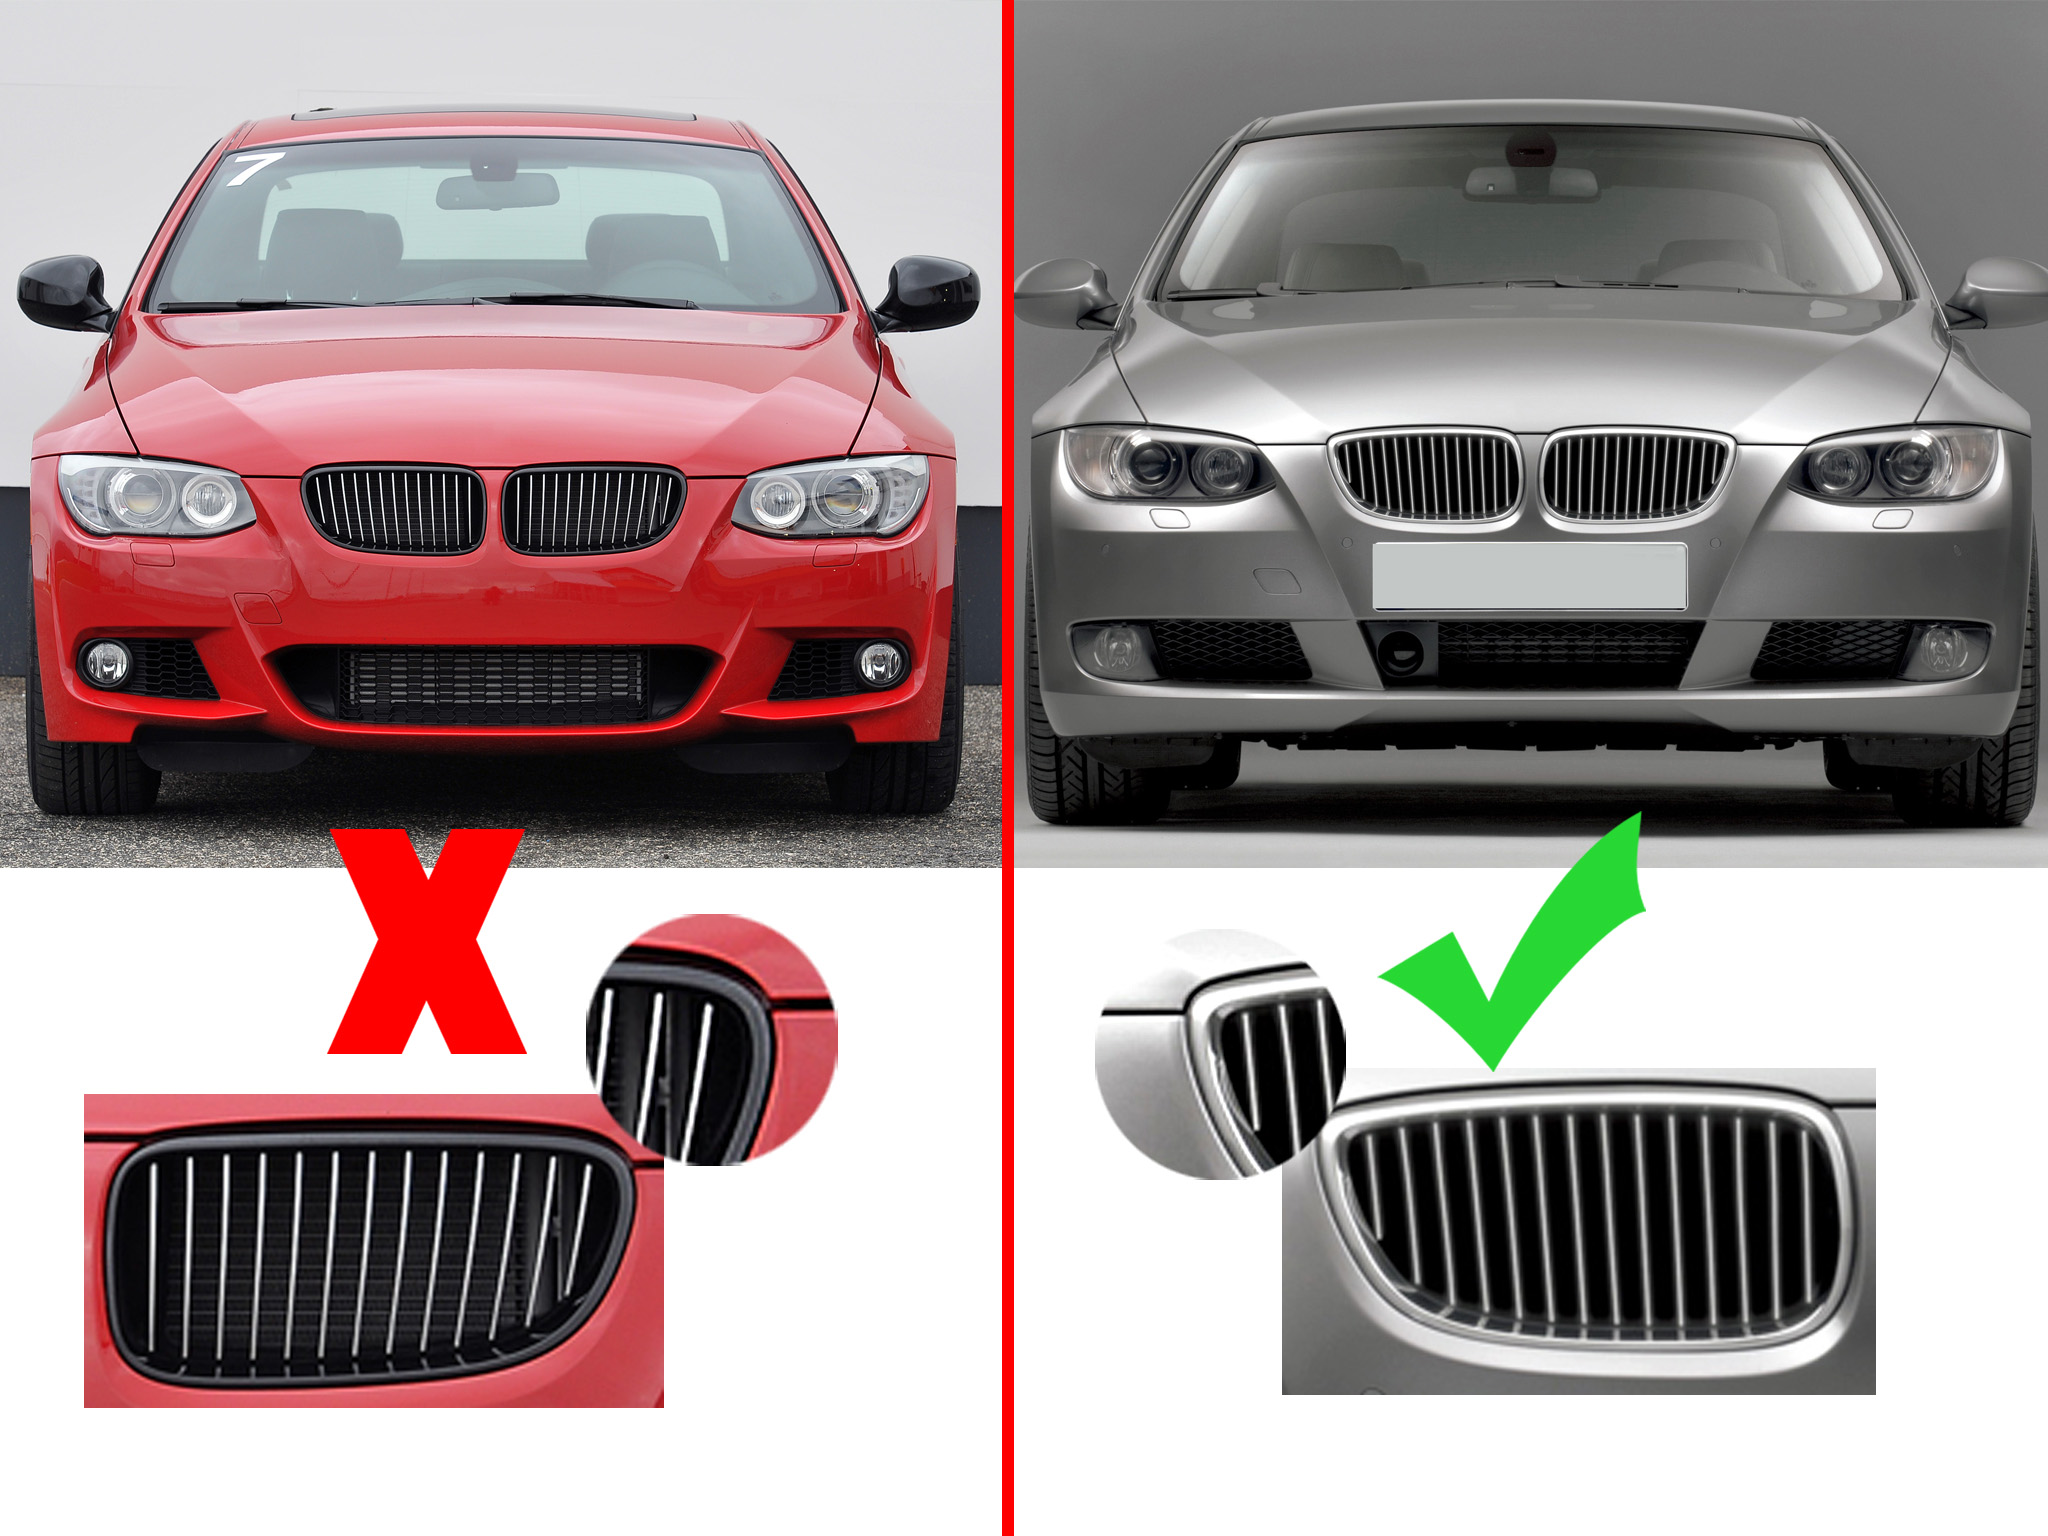 Details about Chrome Plating Front Bumper Grille Grill for BMW E92 E93 M3  328i 335i 2007-2011